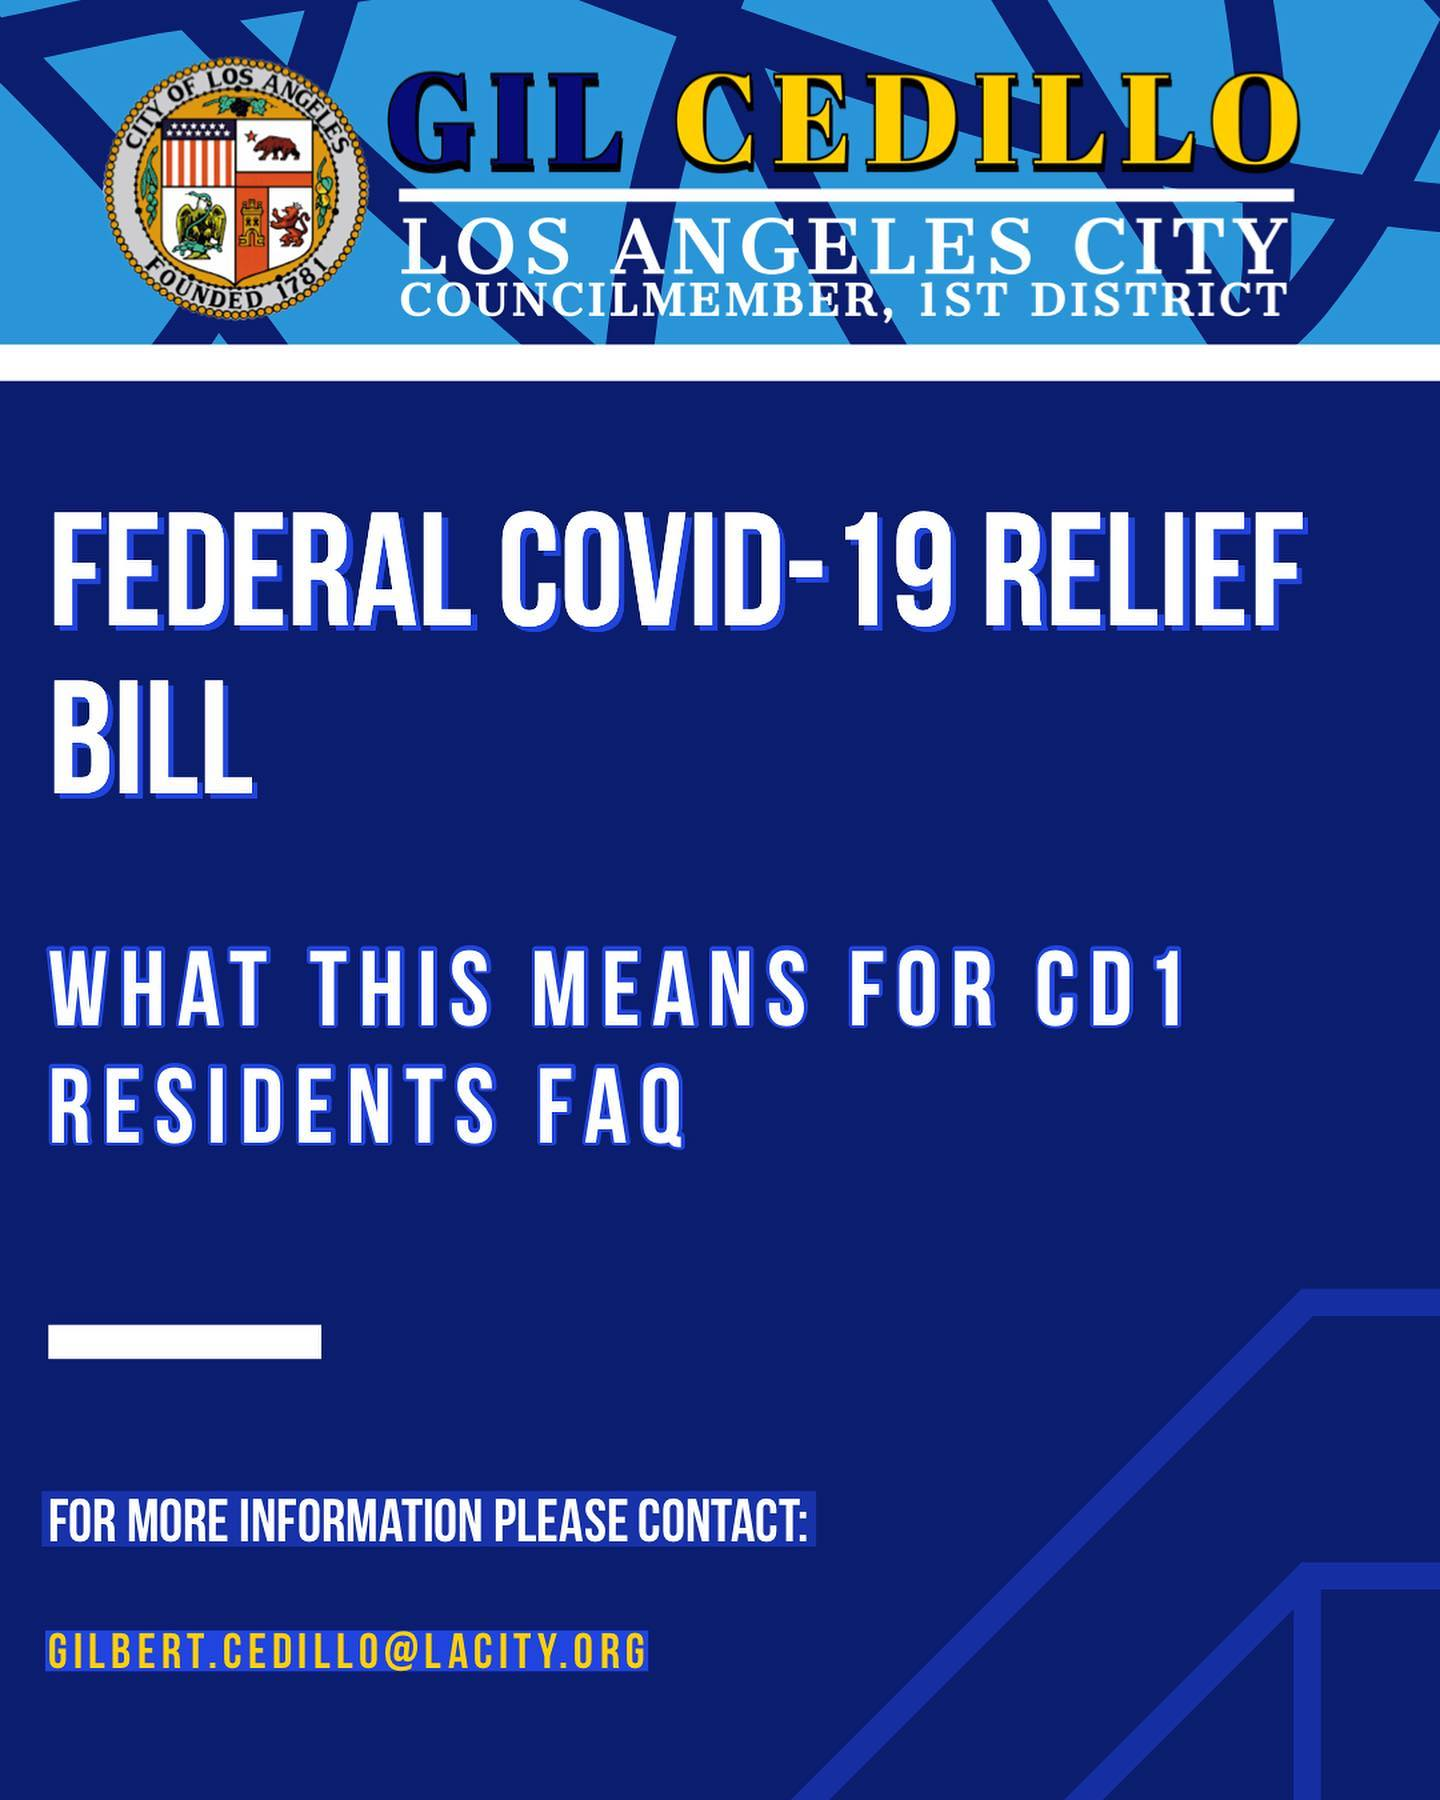 What COVID-19 Relief Bill Means for CD 1 Residents FAQ Page 1